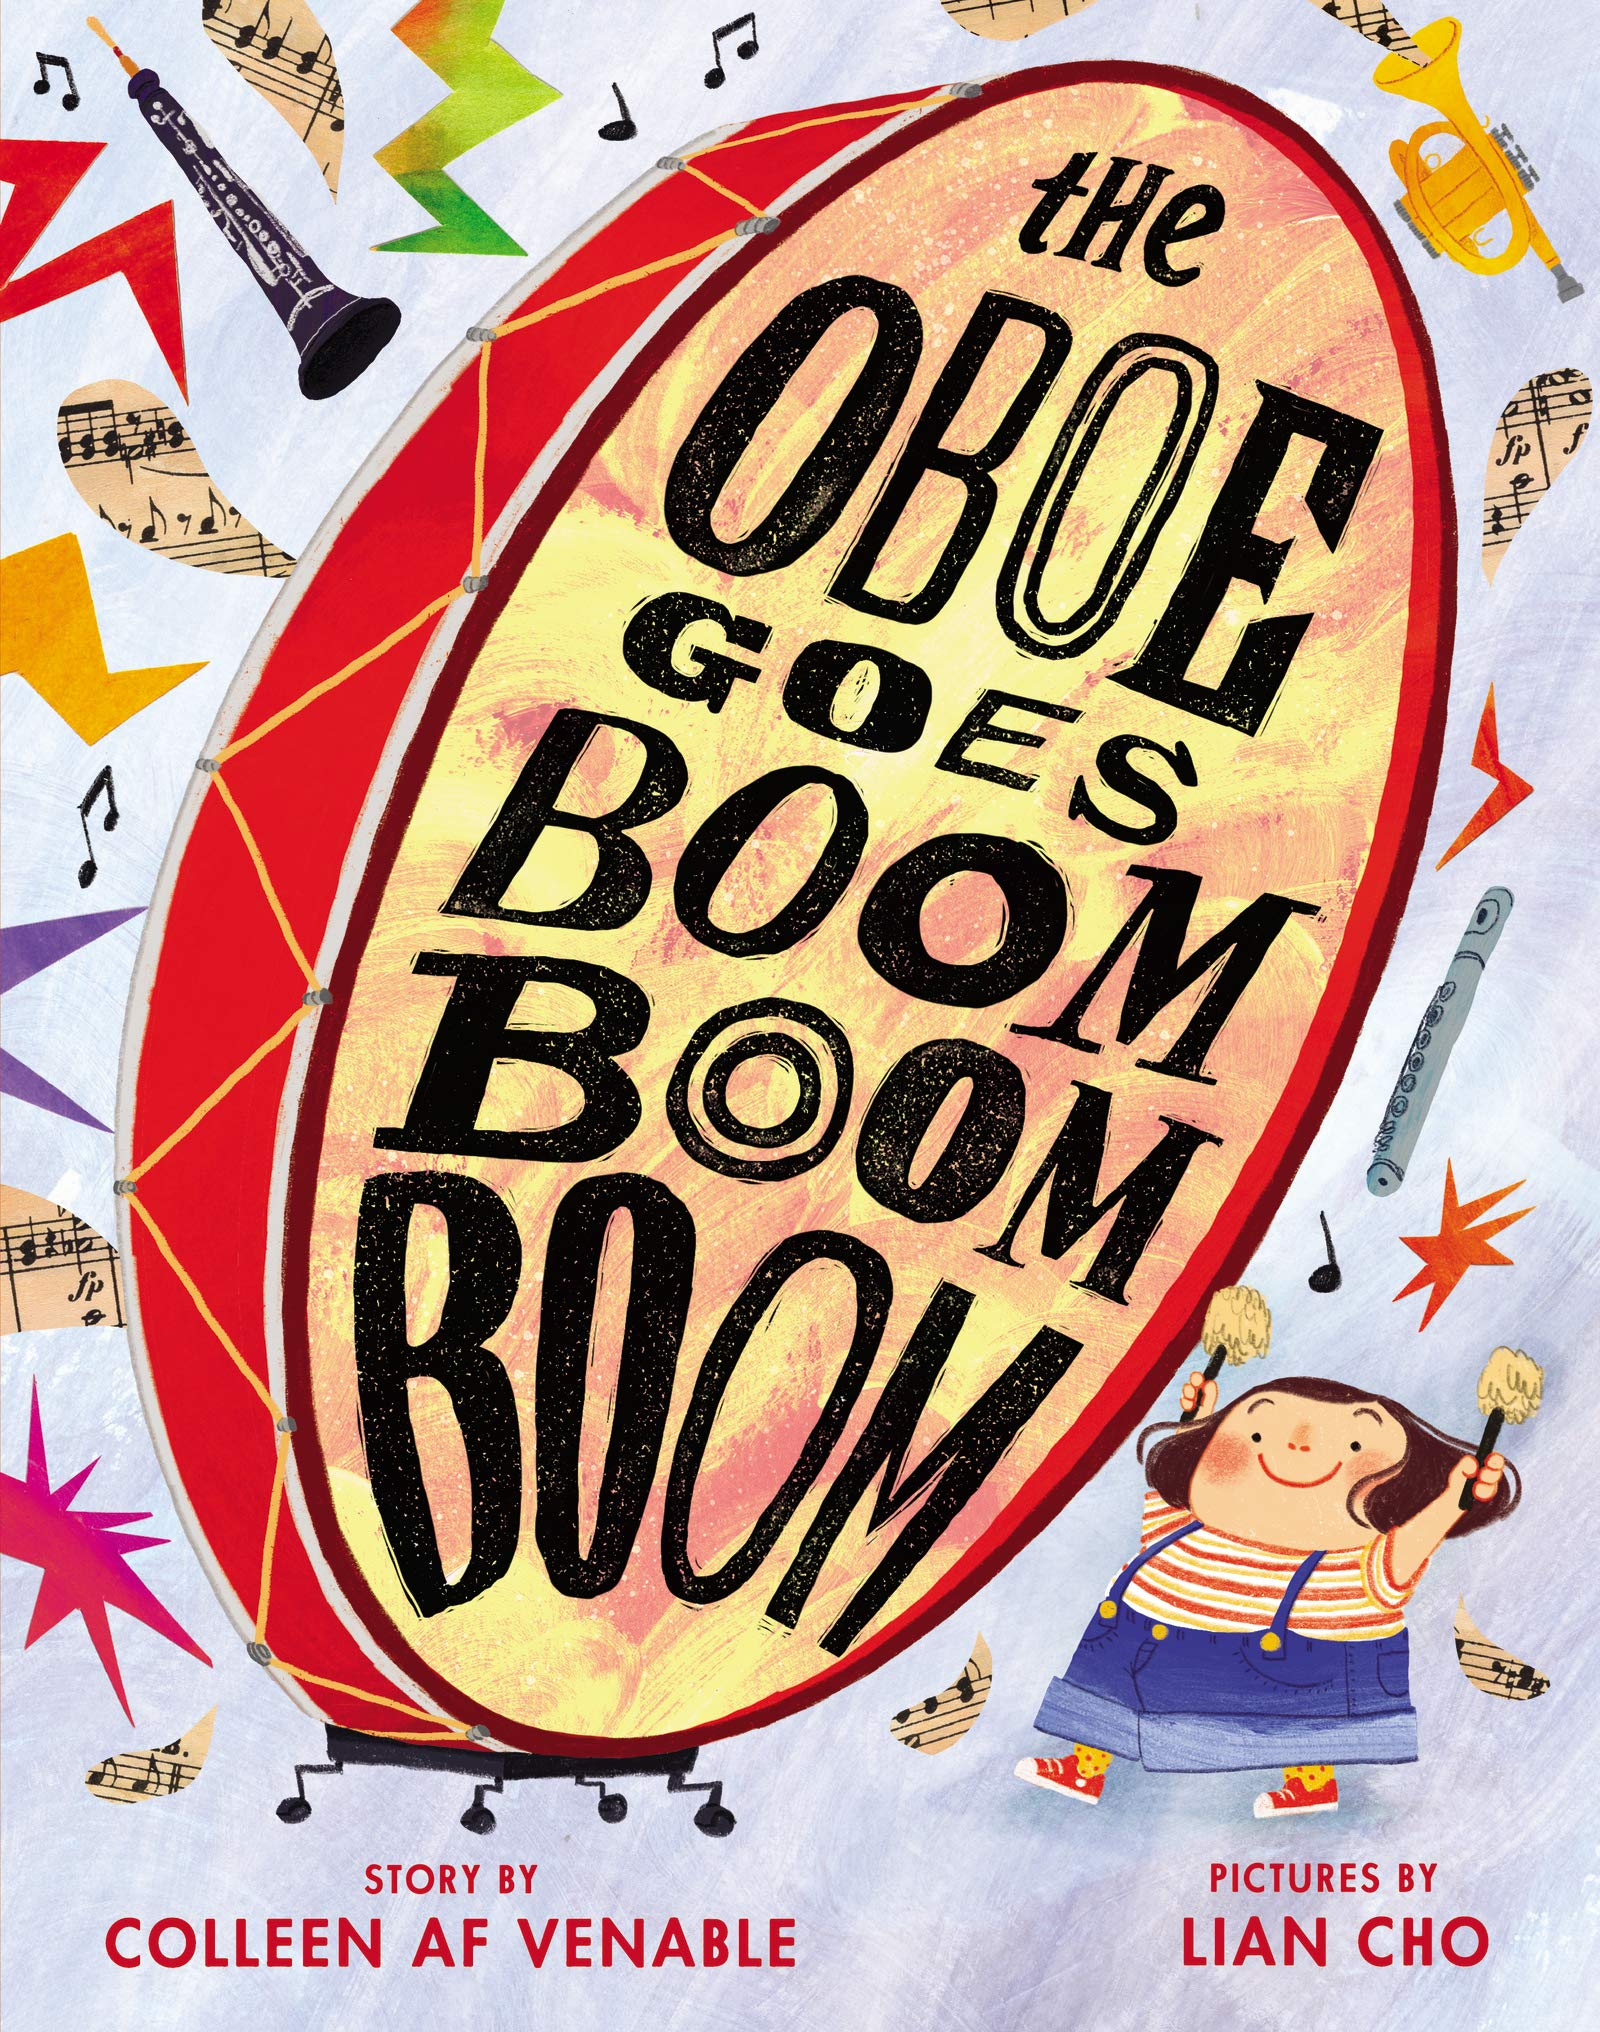 The Oboe Goes Boom Boom Boom: Venable, Colleen AF, Cho, Lian:  9780062494375: Amazon.com: Books